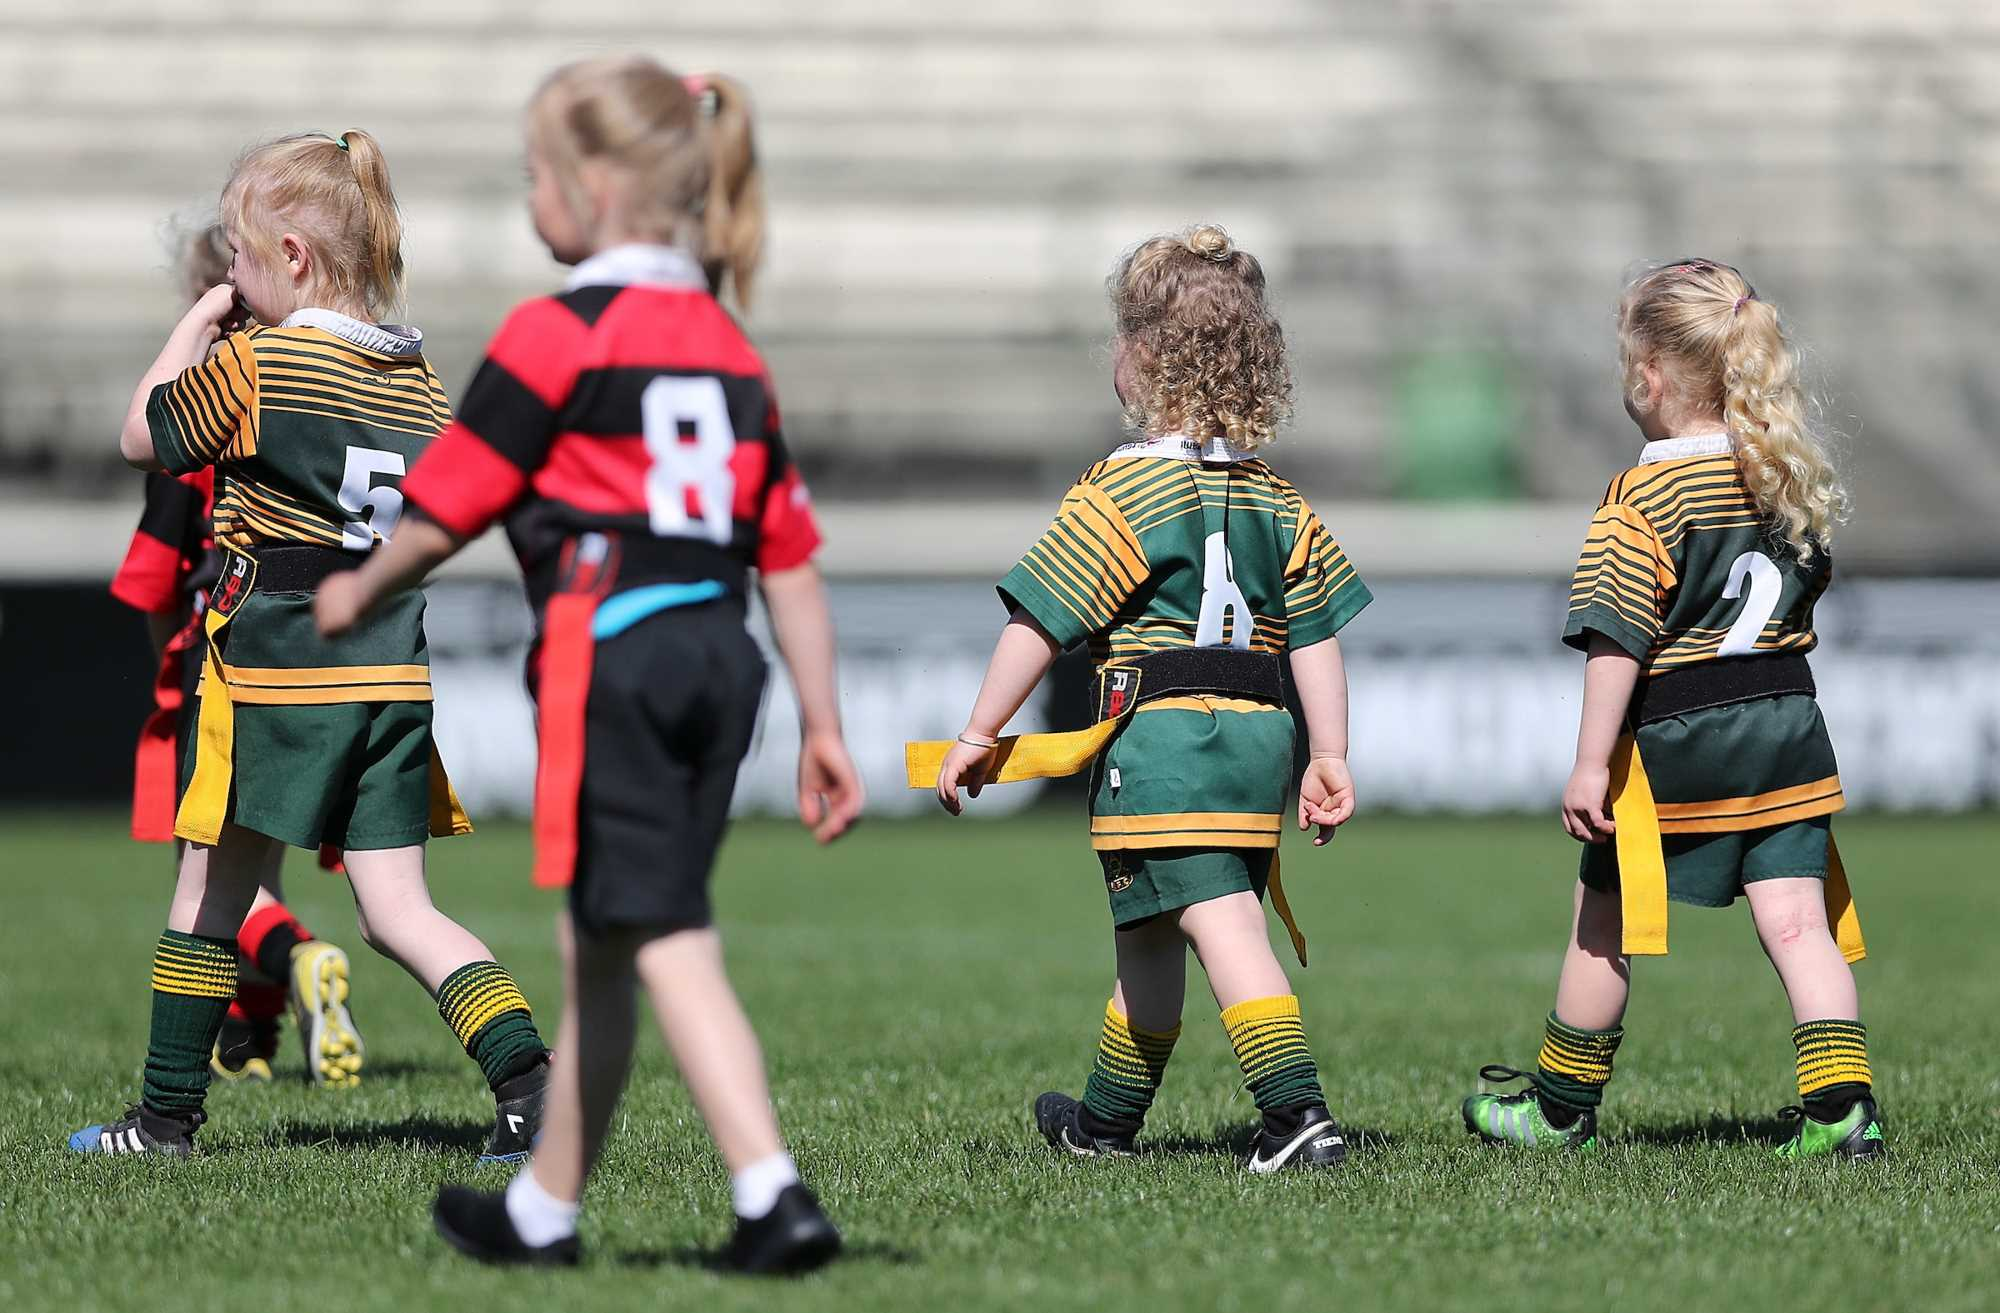 CRFU and Strategy Creative to Change the Face of Rugby Recruitment